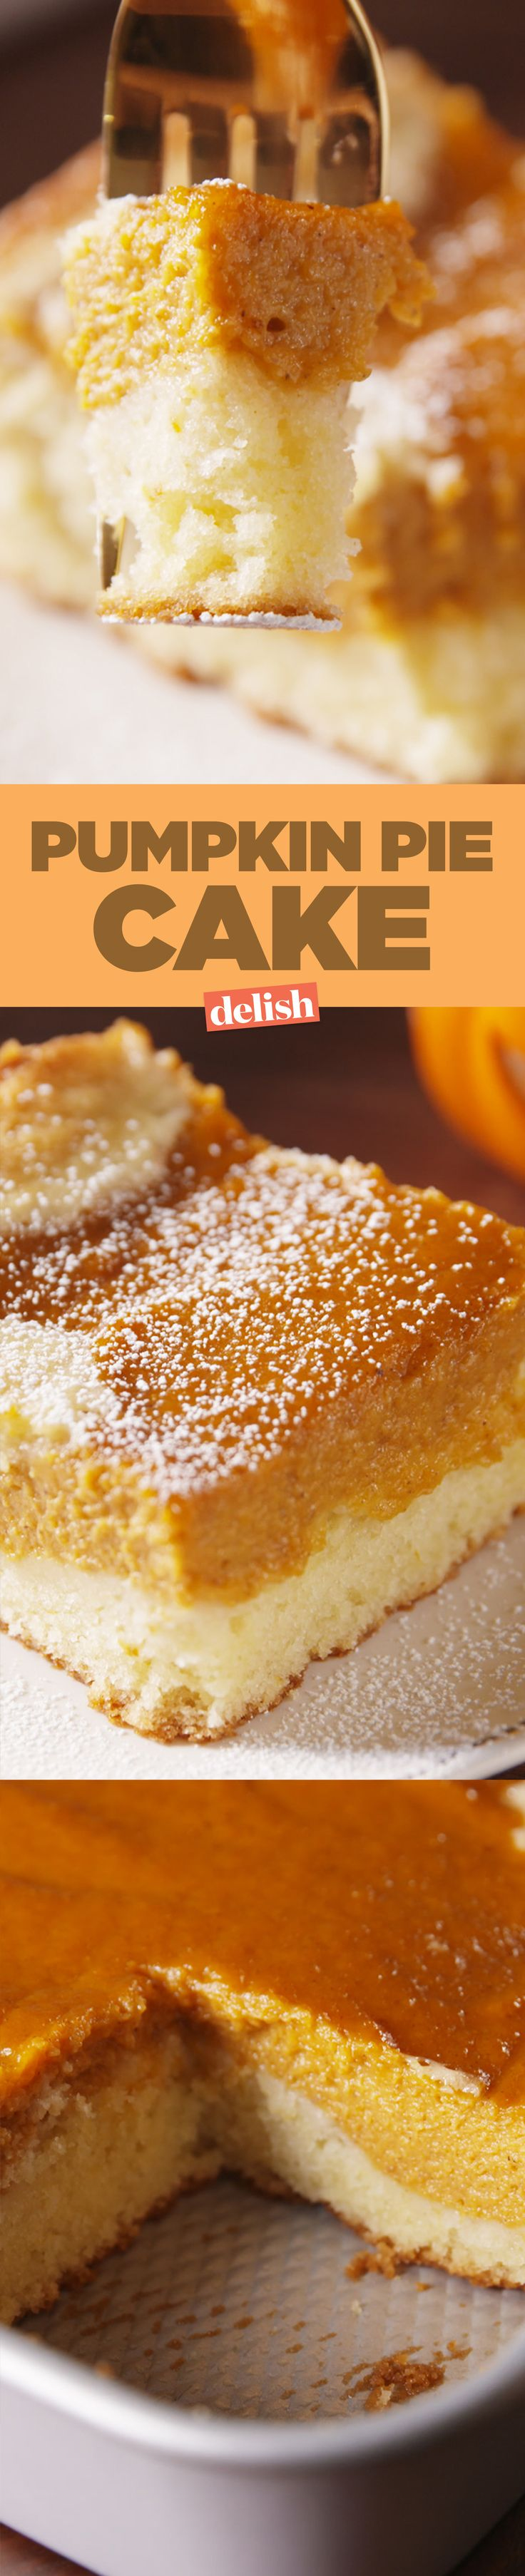 People are obsessed with Pumpkin Pie Cake, and for a good reason. Get the recipe on Delish.com.